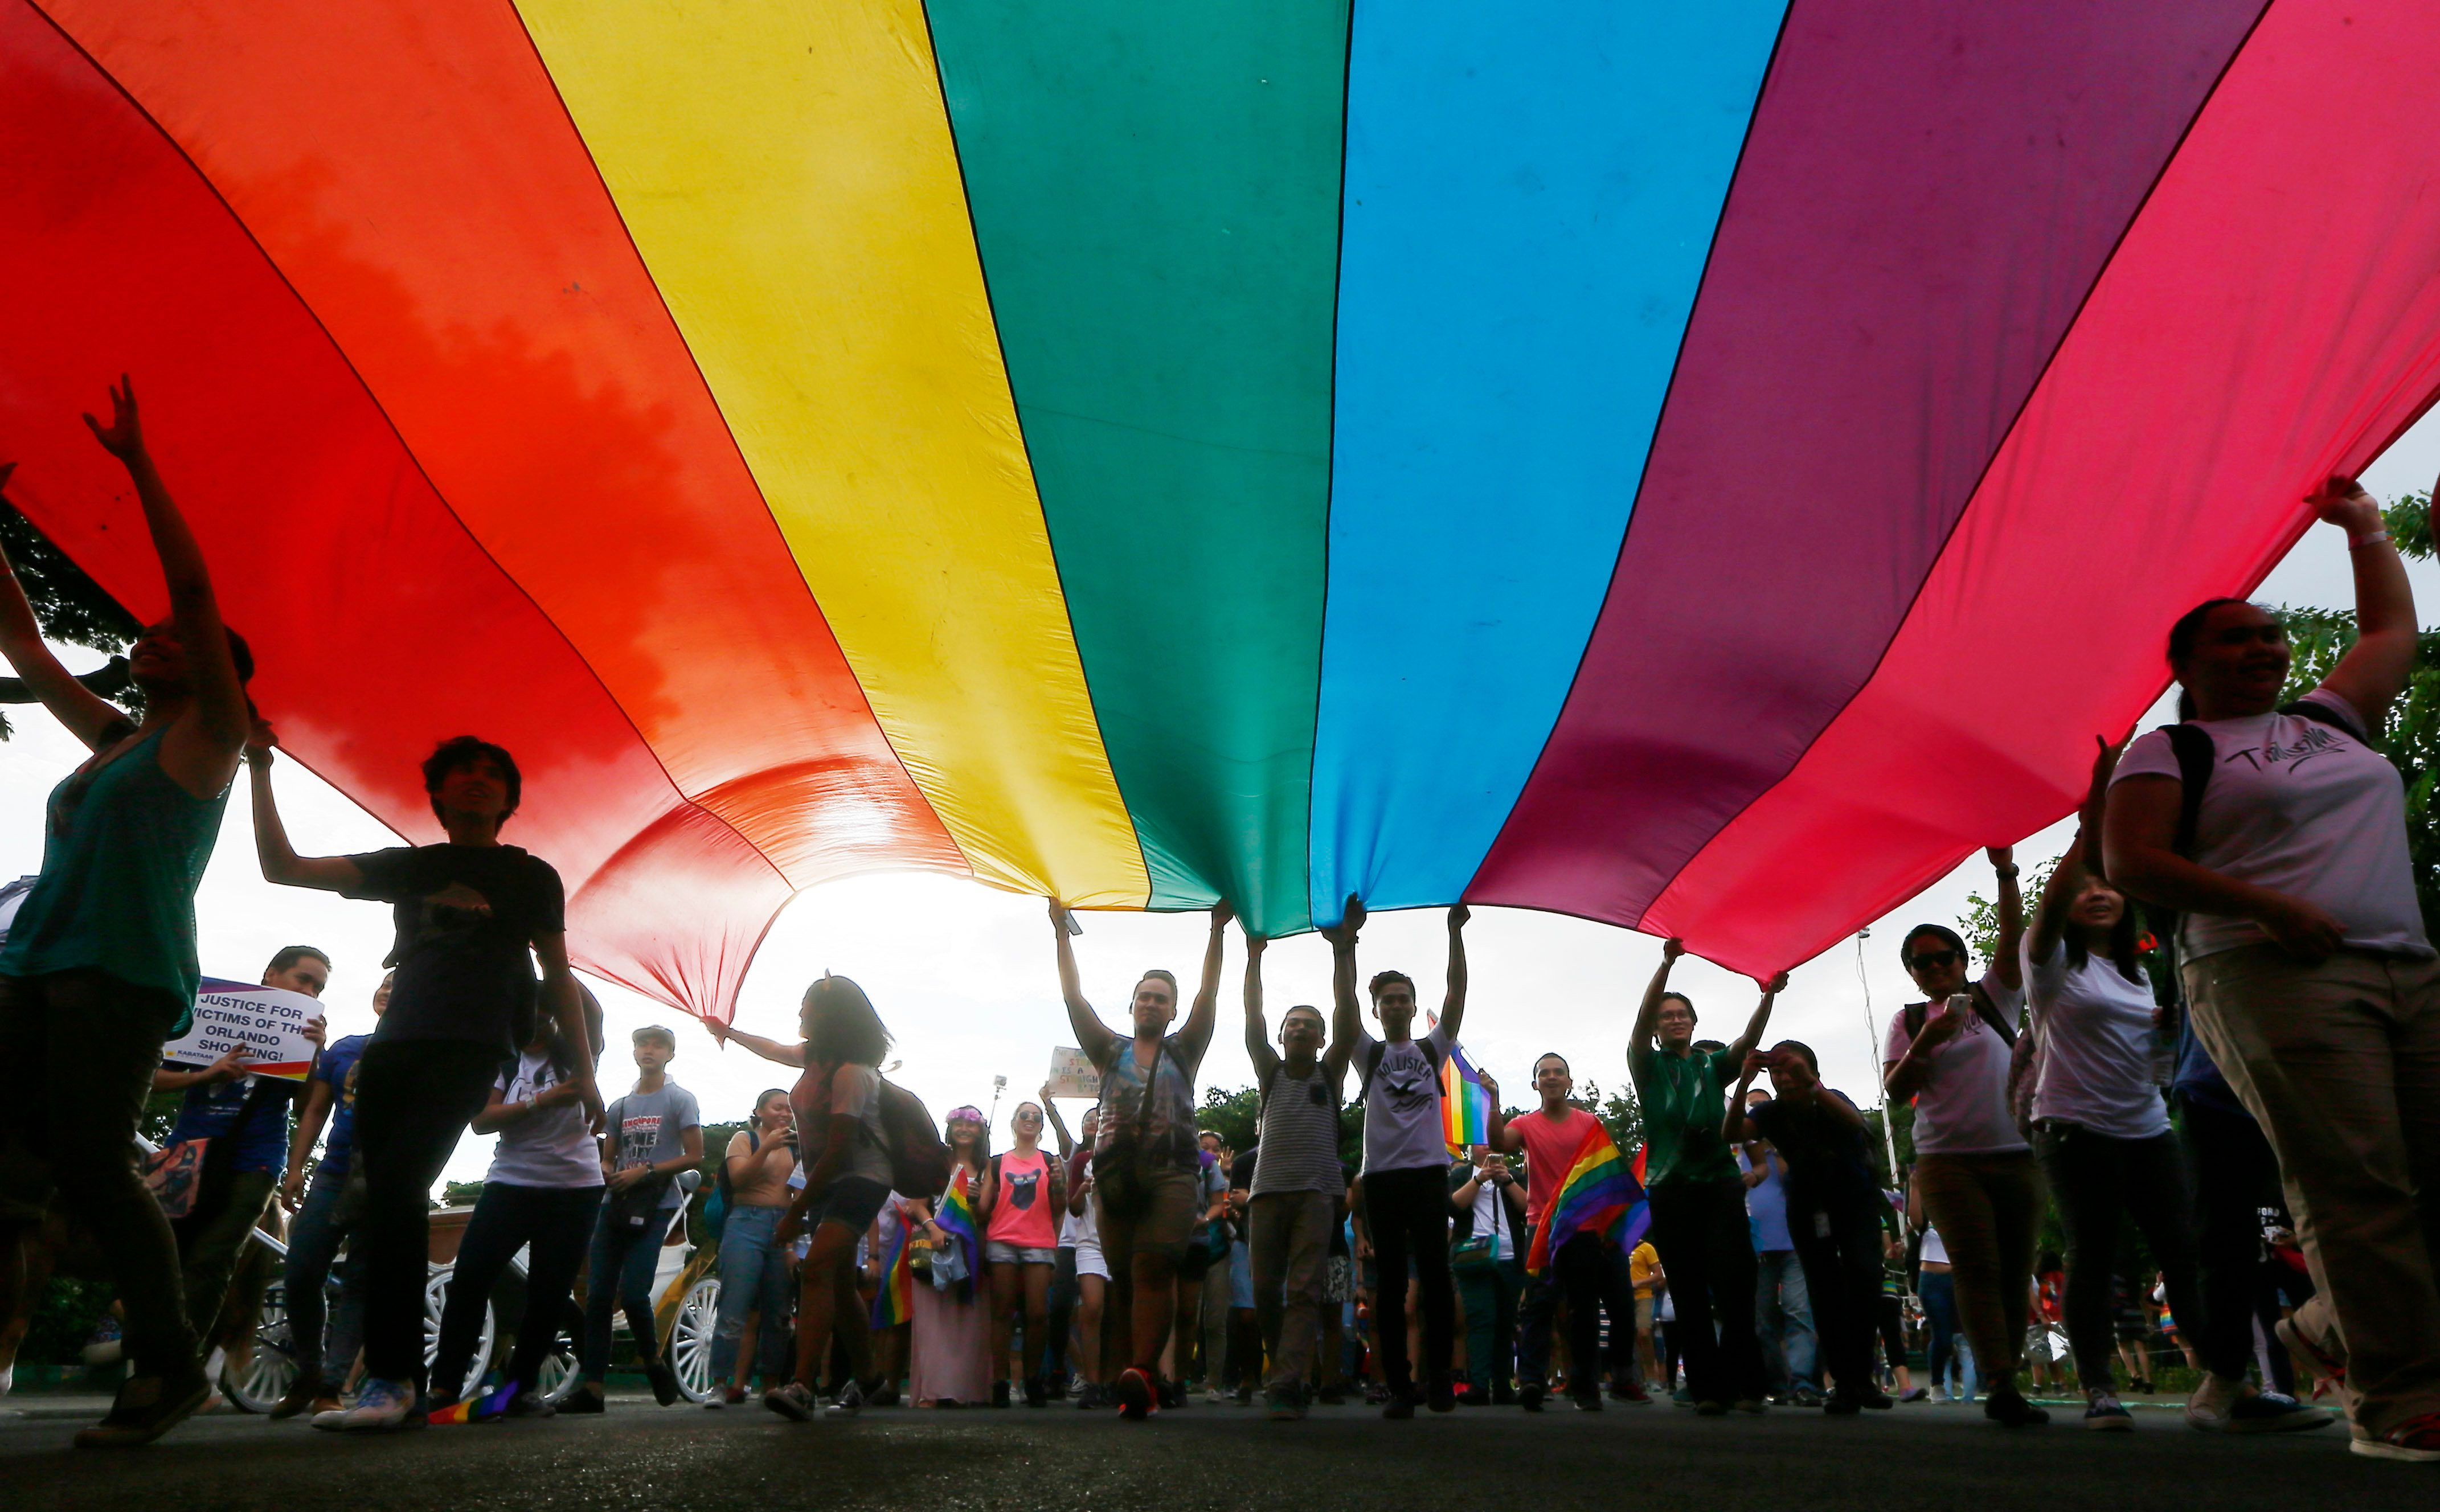 """FILE - In this Saturday, June 25, 2016. file photo, members of LGBT carry a huge rainbow flag as they march around the Rizal Park to celebrate the annual """"Pride March""""in Manila, Philippines. Several LGBT organizations are calling for the passage of an Anti-Discrimination bill that they say would protect the LGBT community .(AP Photo/Bullit Marquez)"""